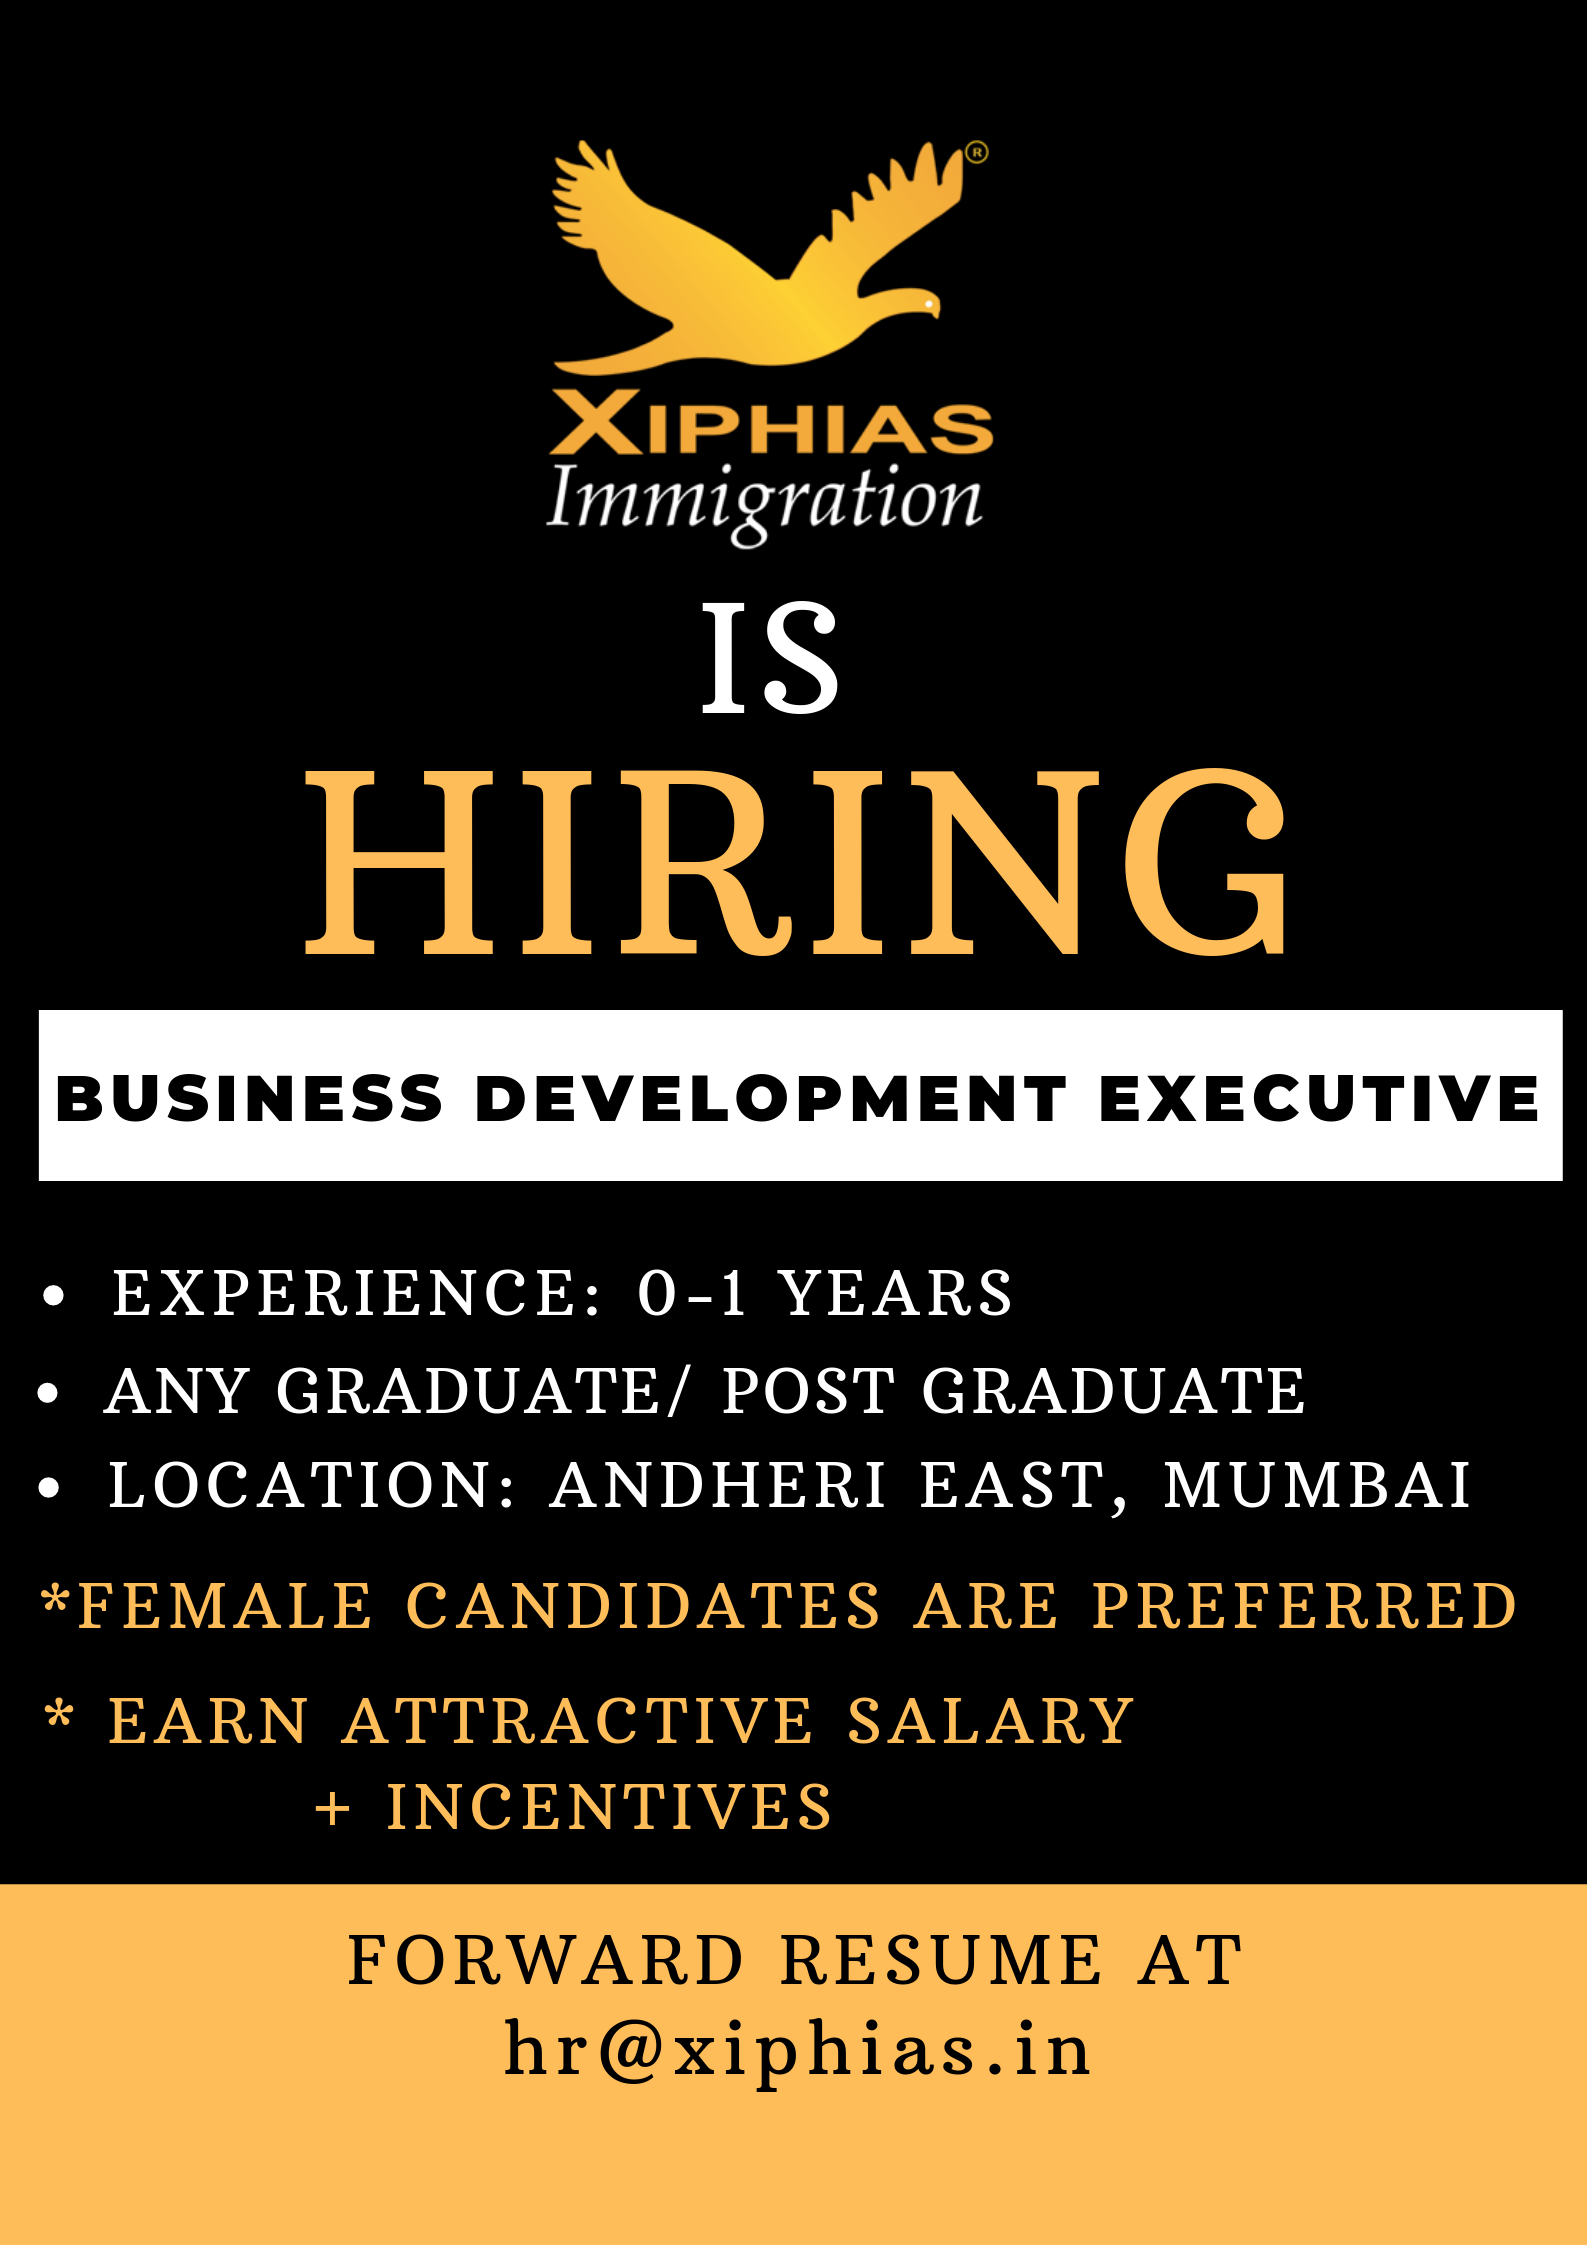 XIPHIAS is Hiring Business Development Executive Job